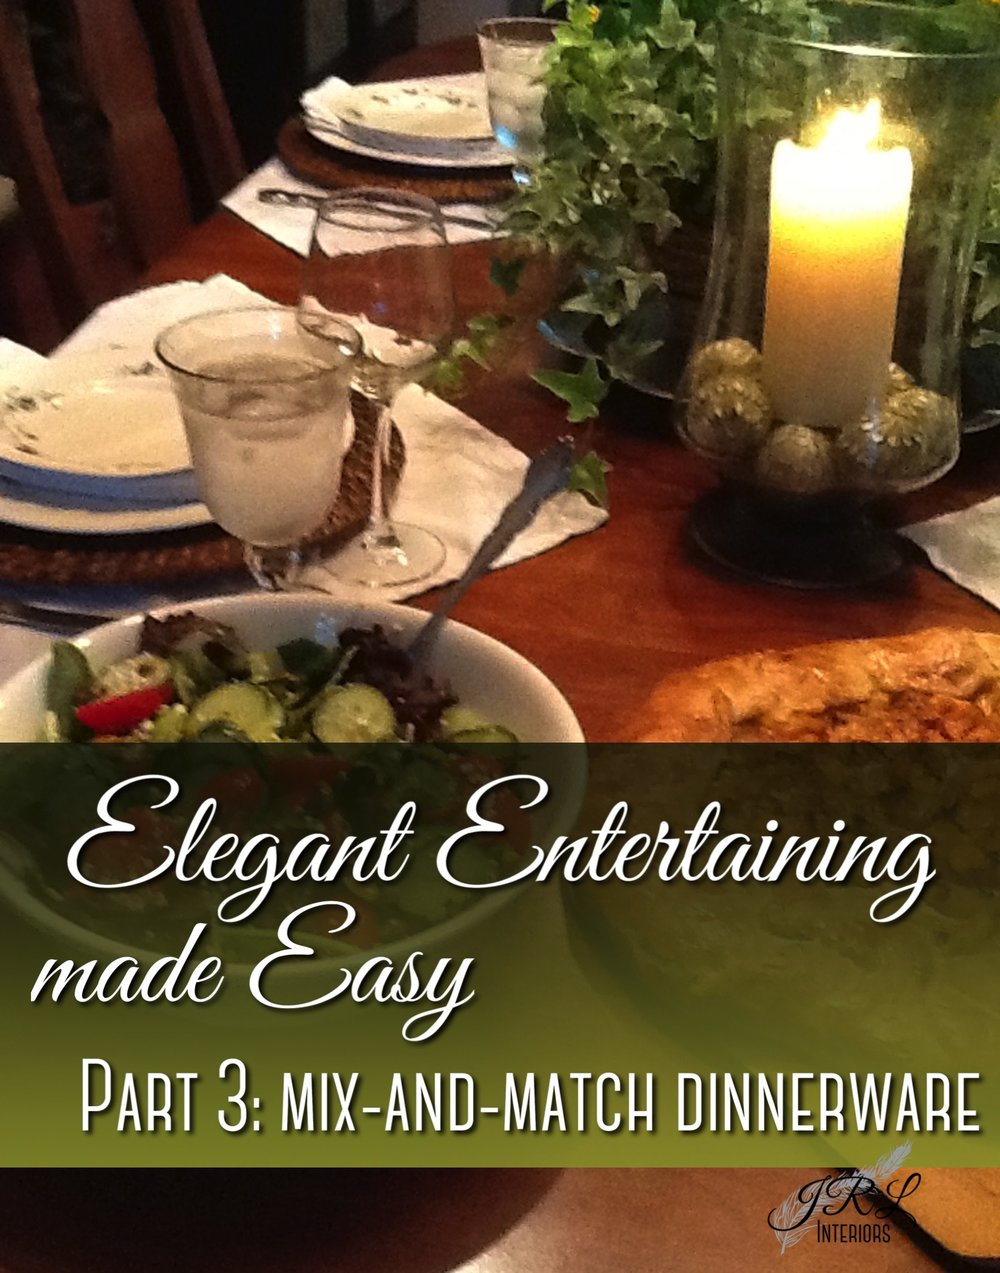 Elegant-Entertaining-made-Easy.-Part-3.jpg